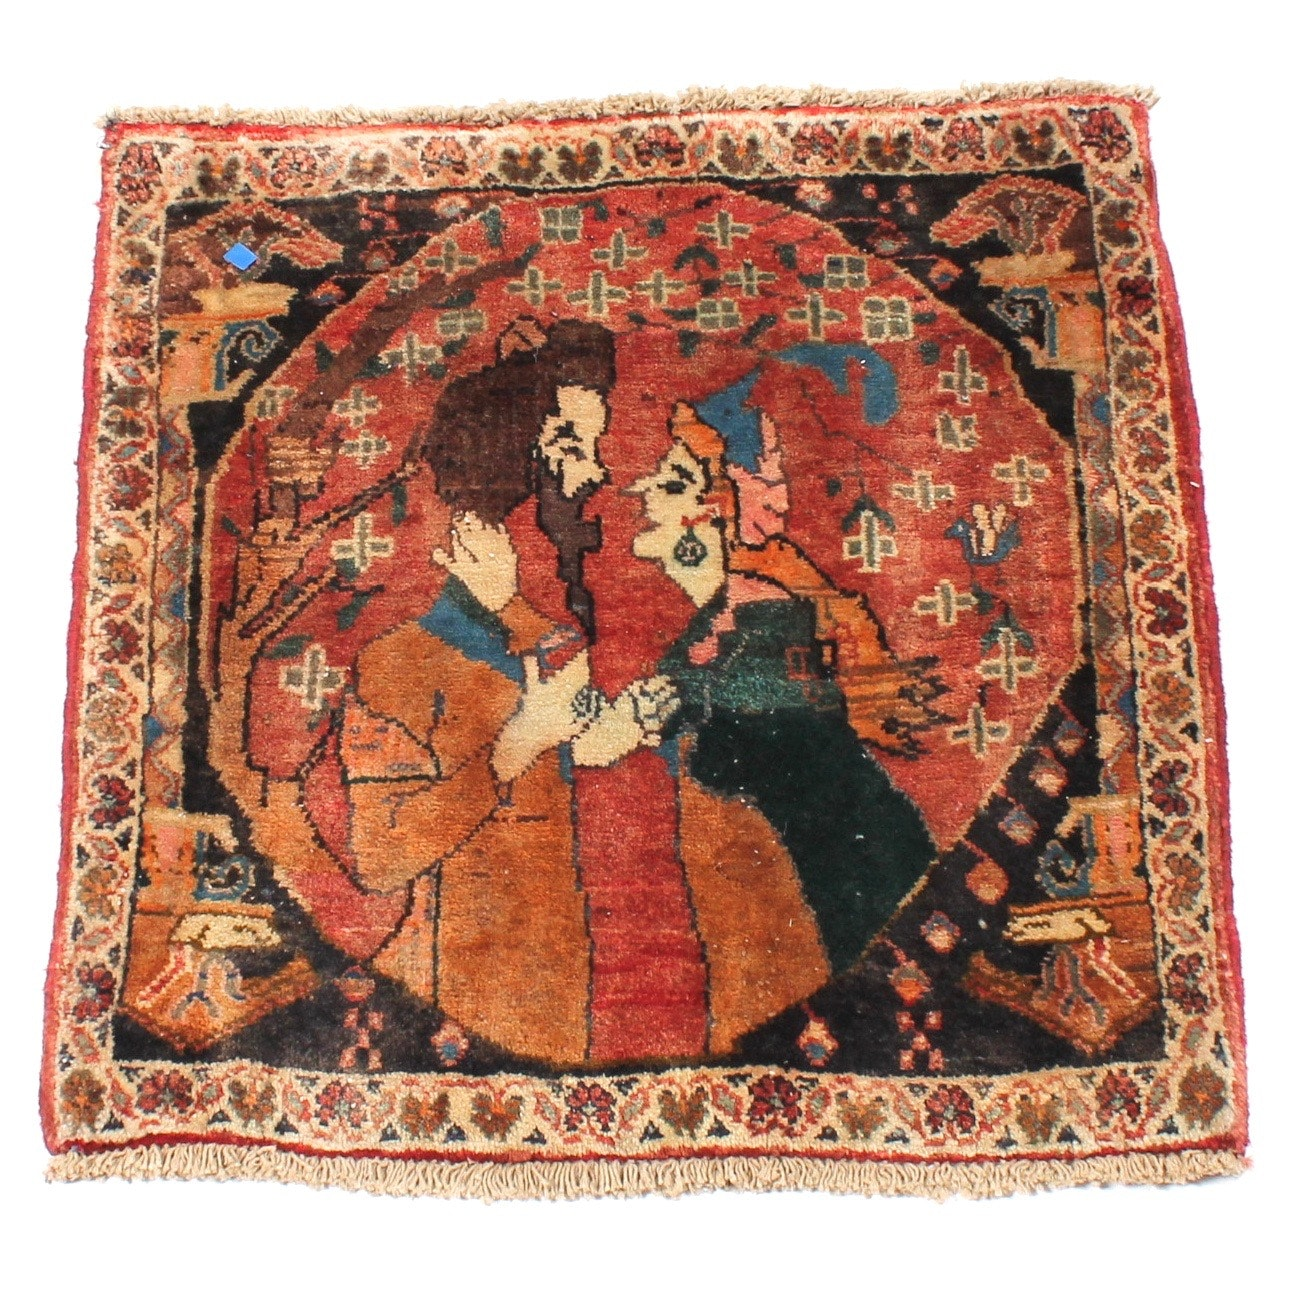 2' x 2' Vintage Hand-Knotted Persian Isfahan Pictorial Accent Rug